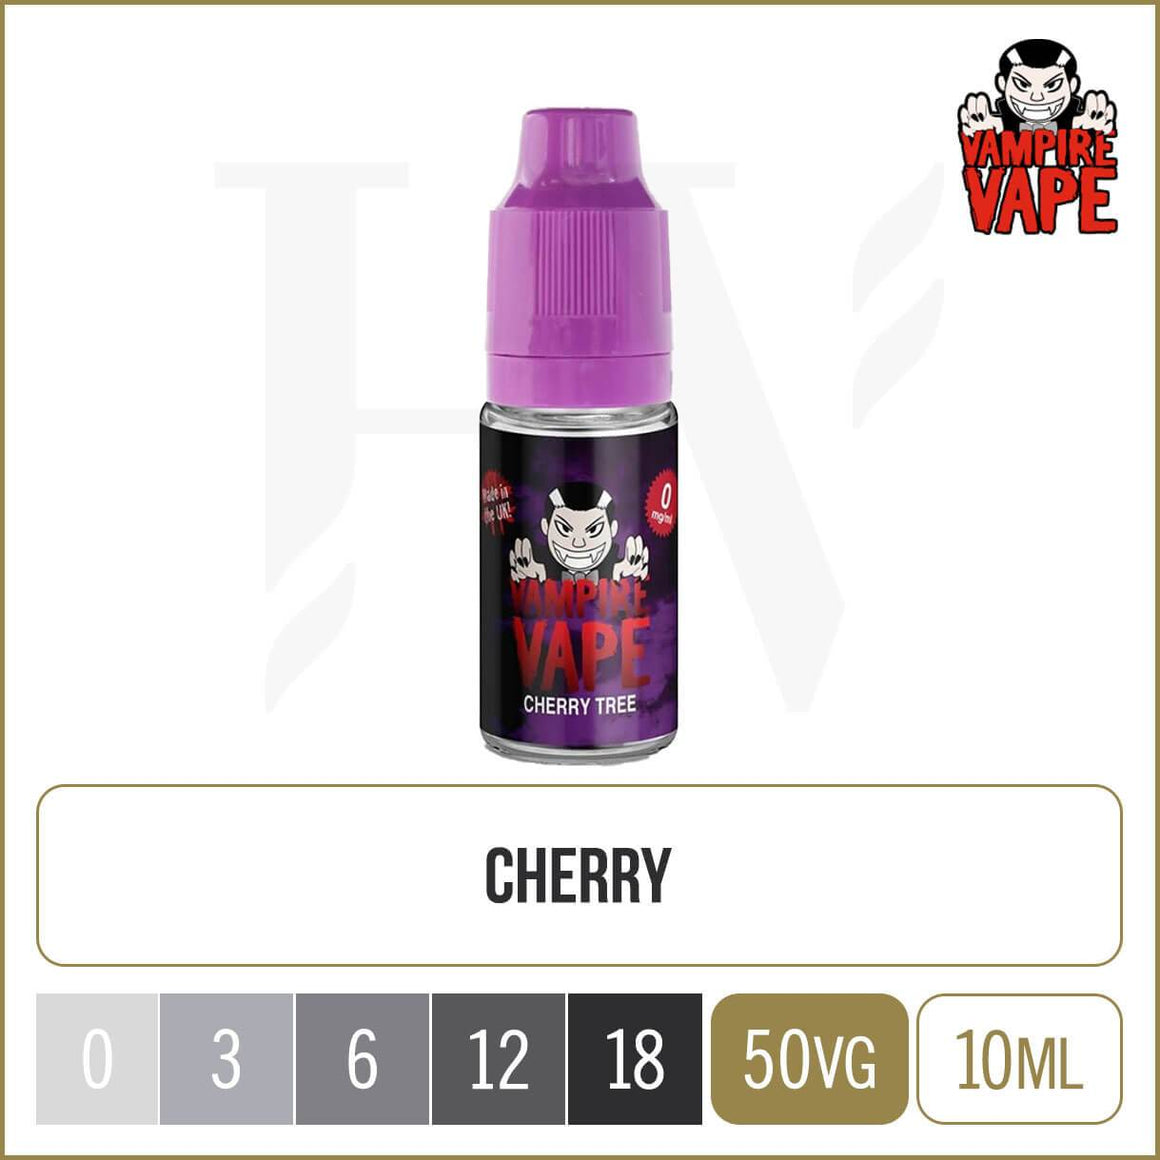 Vampire Vape cherry tree e liquid 10ml